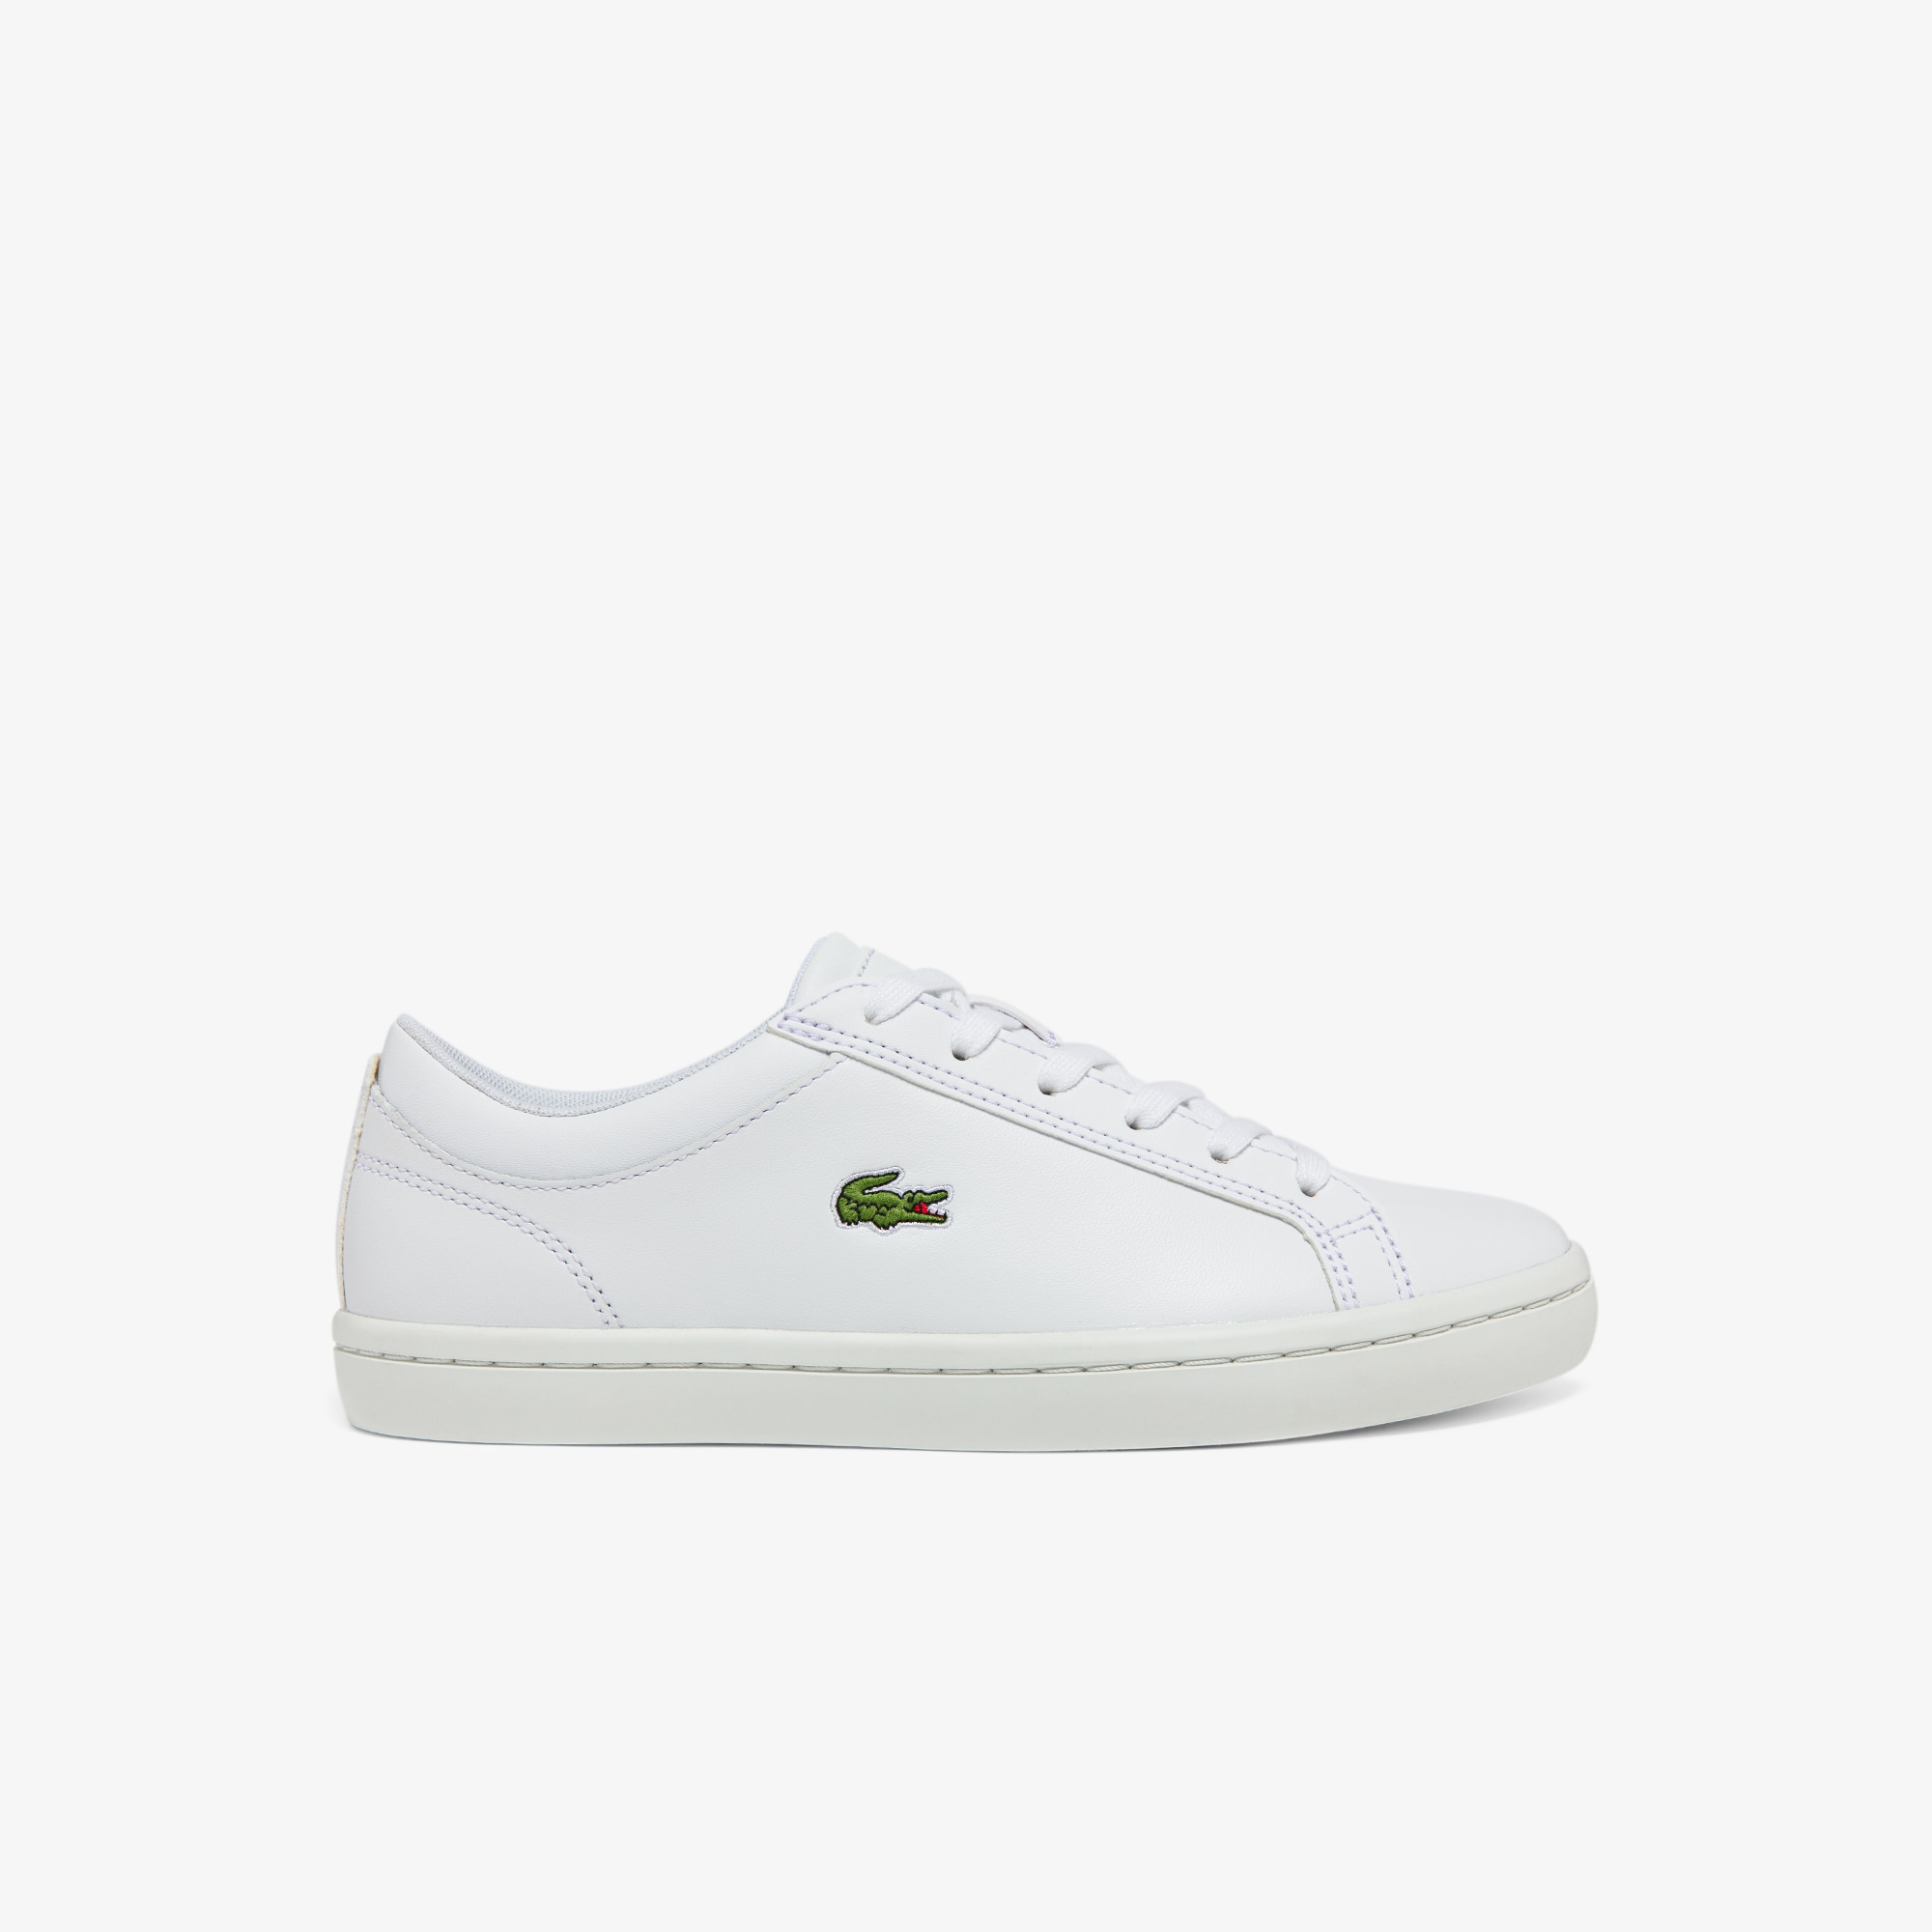 18bd84b0e408 Women s Straightset Leather Sneakers